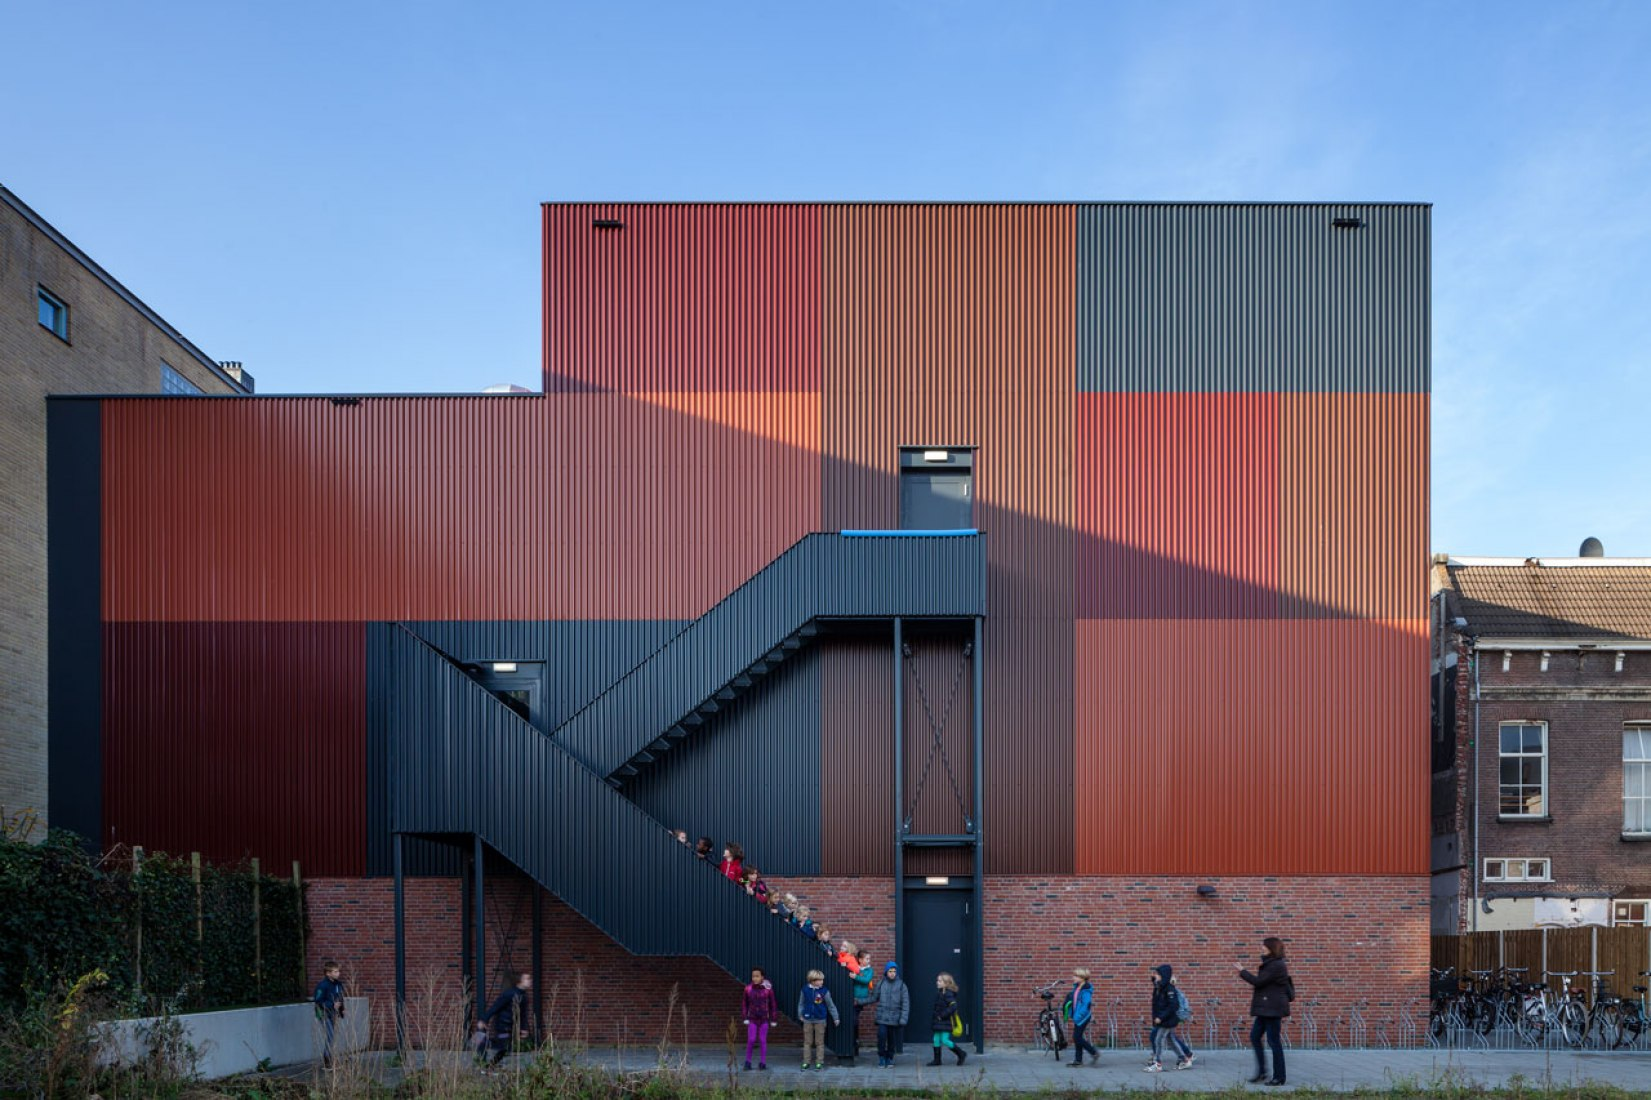 Sports Block Groningen by Marlies Rohmer Architects & Urbanists. Photograph © Daria Scagliola / Stijn Brakkee. Click above to see larger image.